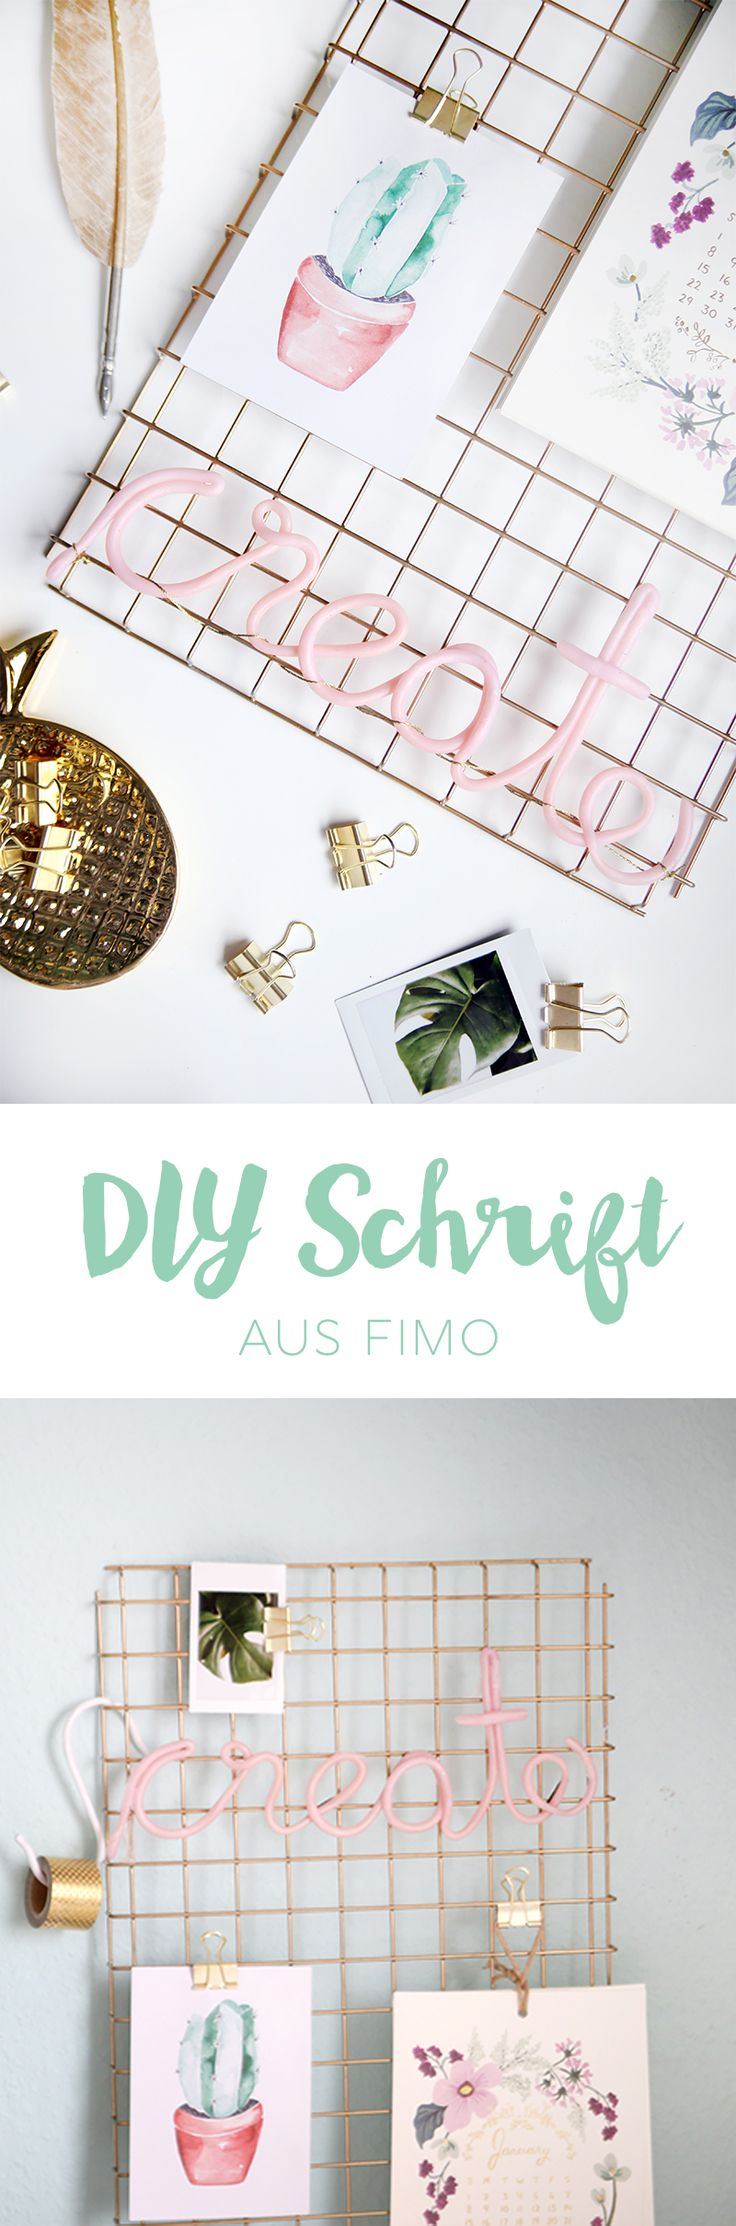 Kleines badezimmer dekor diy  best wohnung images on pinterest  projects crafts and live